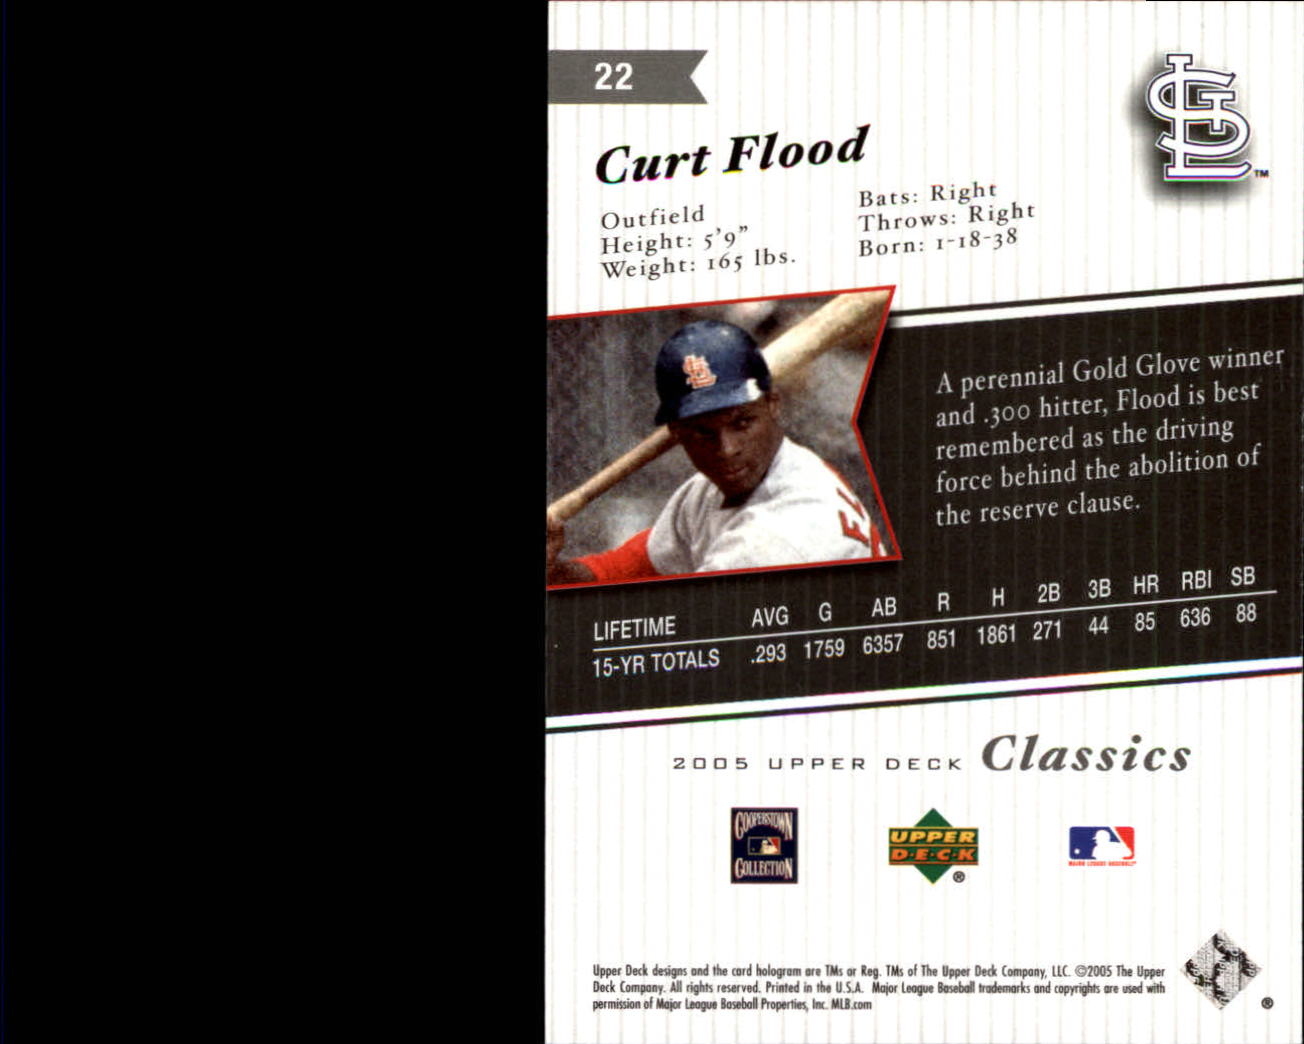 2005 Upper Deck Classics #22 Curt Flood back image